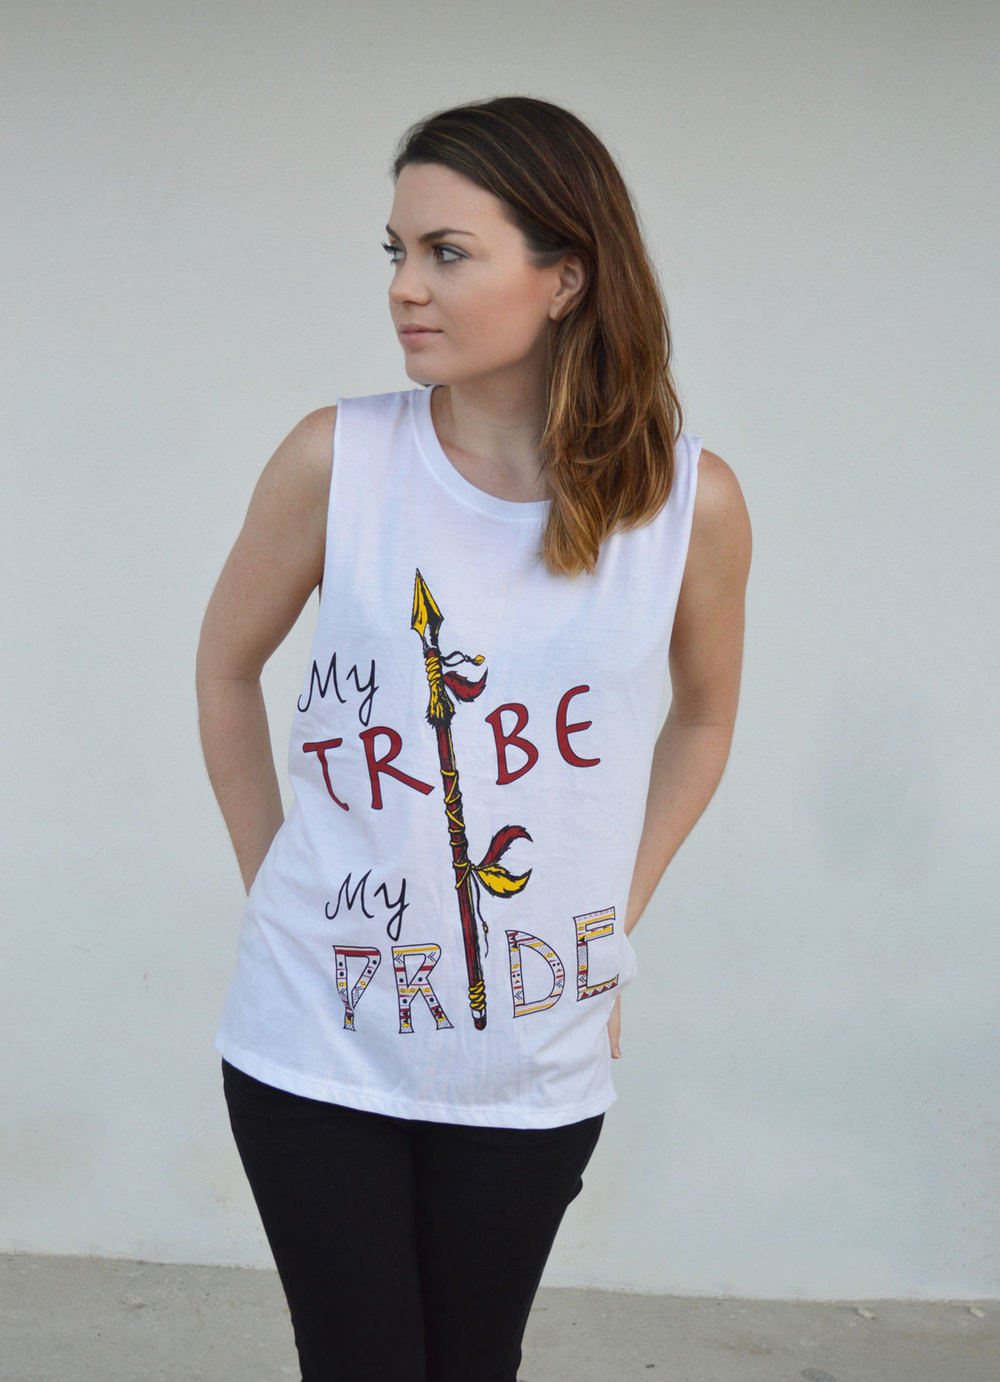 fsu-florida-state-gameday-threadz-game-wear-football-college-team-seminoles-tribe-pride-lifestyle-style-blogger-2014.jpeg